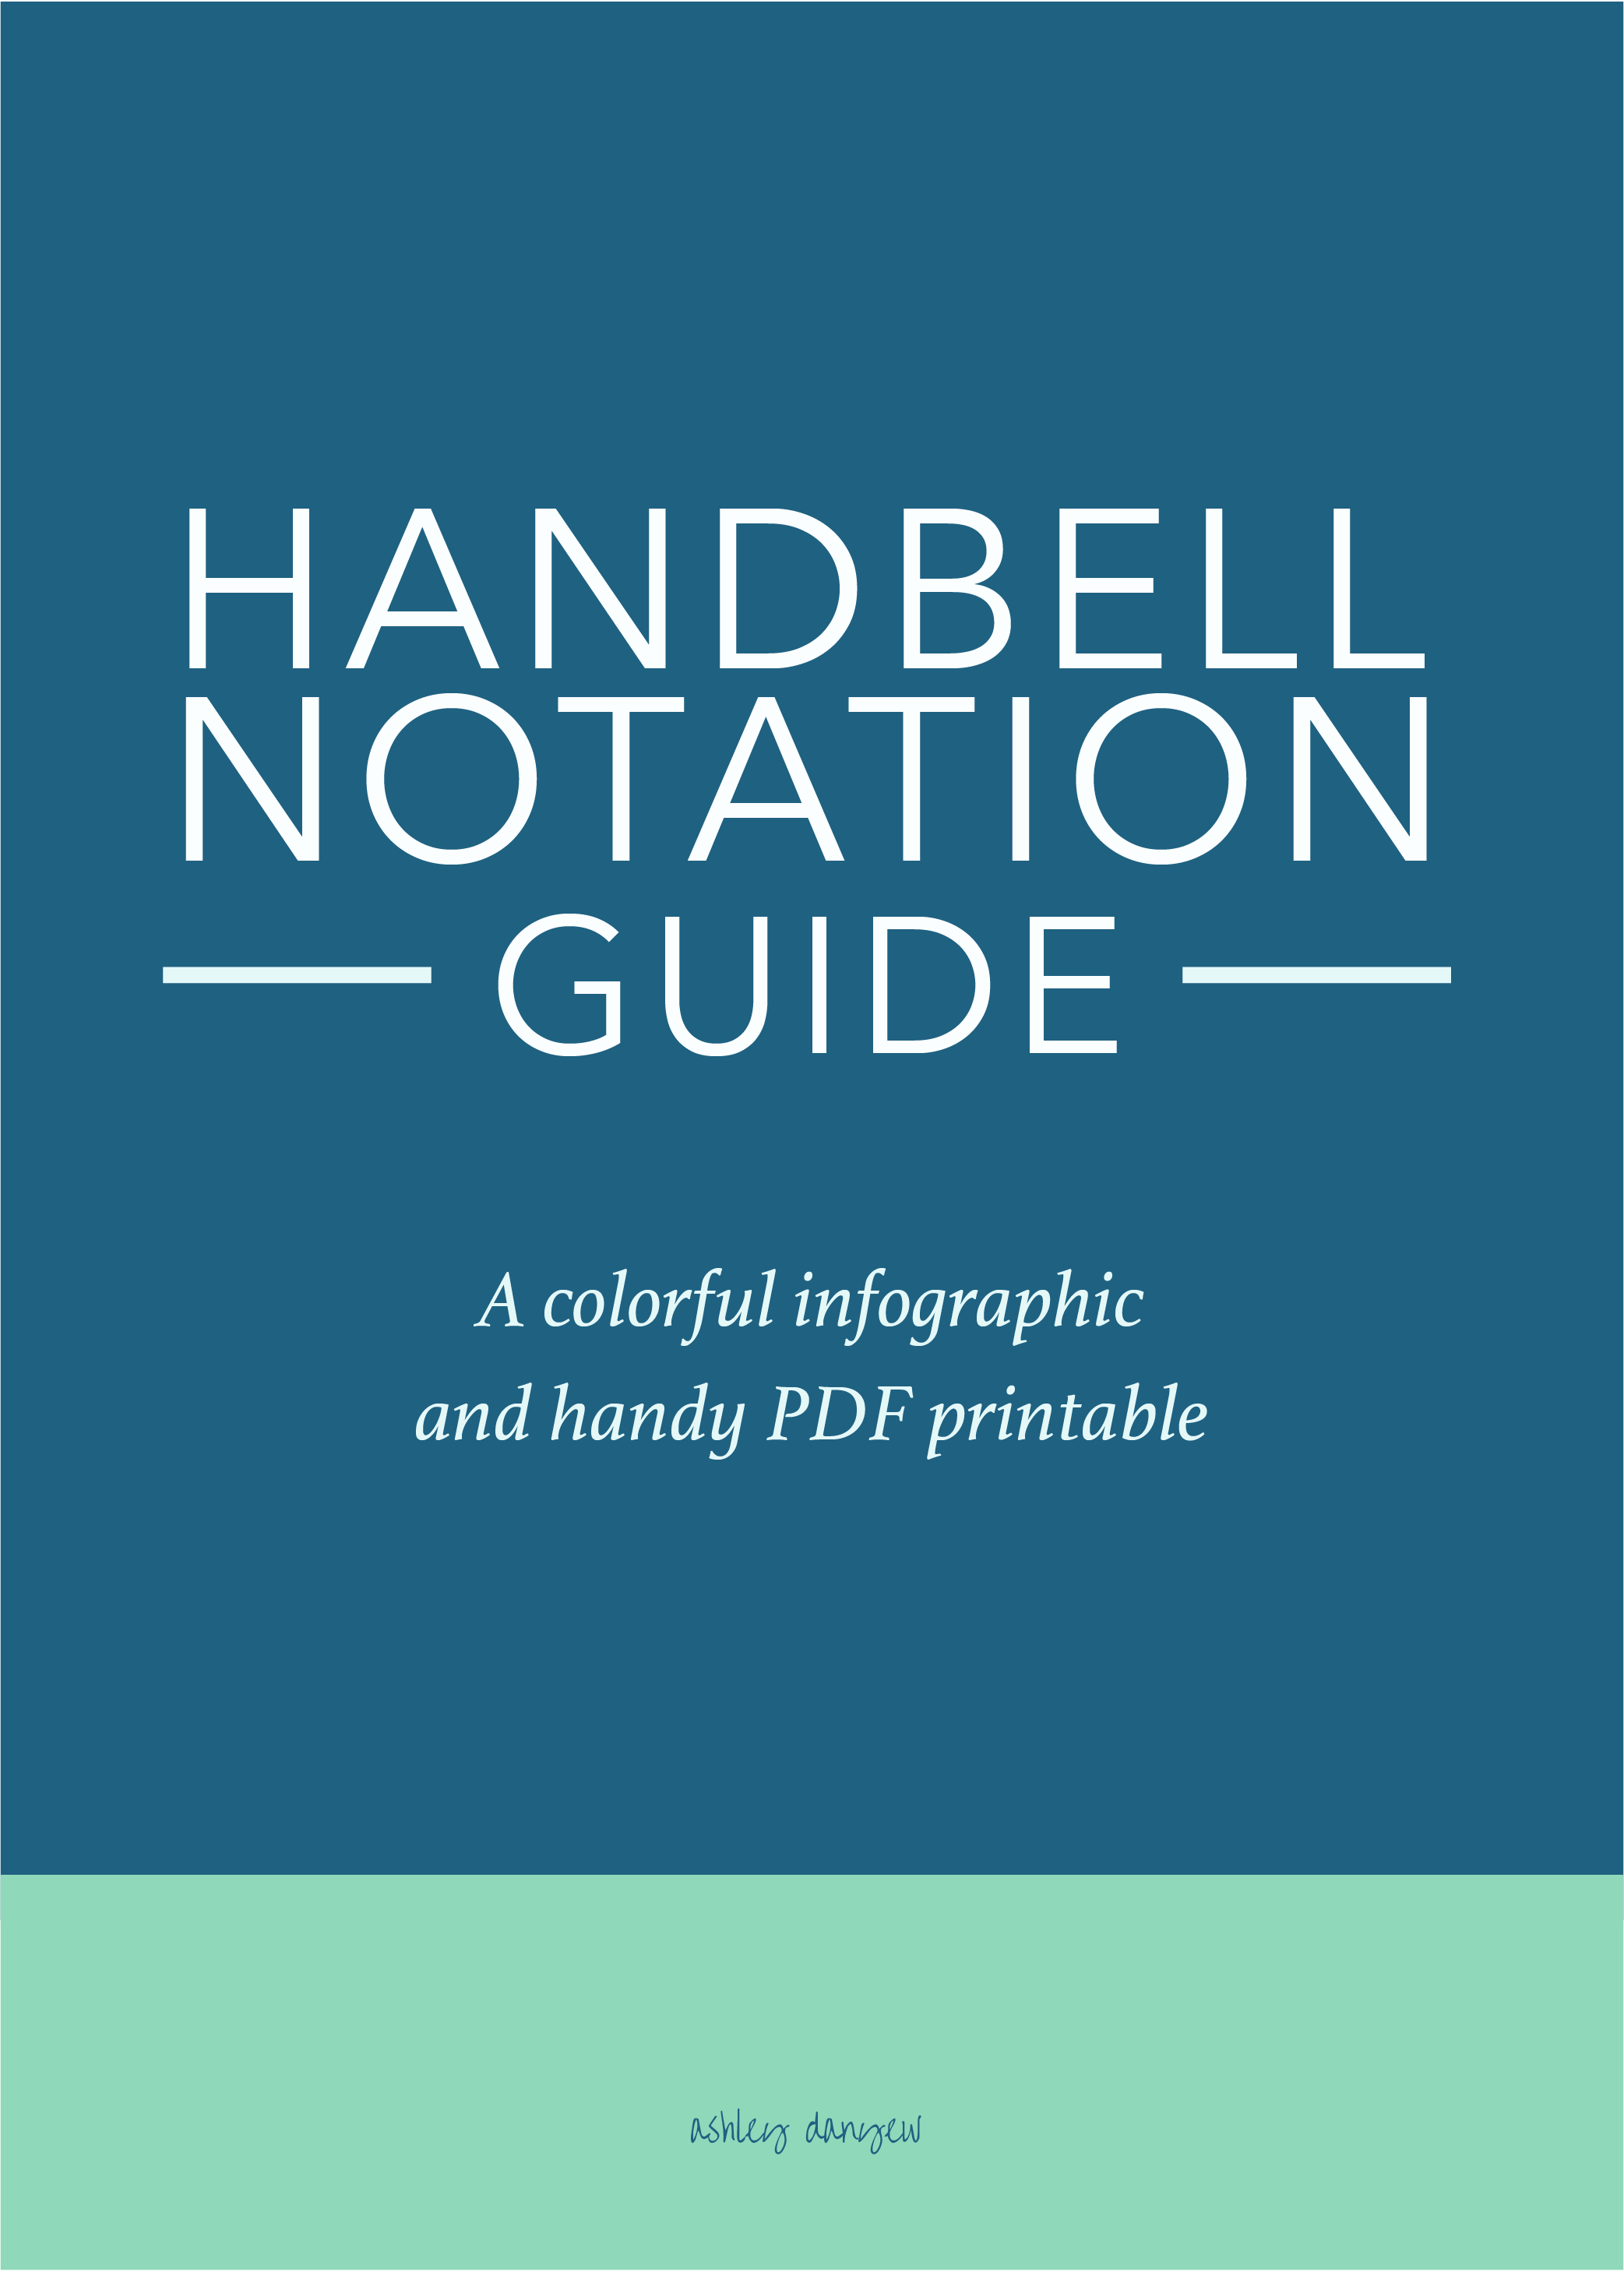 Copy of Handbell Notation Guide [Infographic]